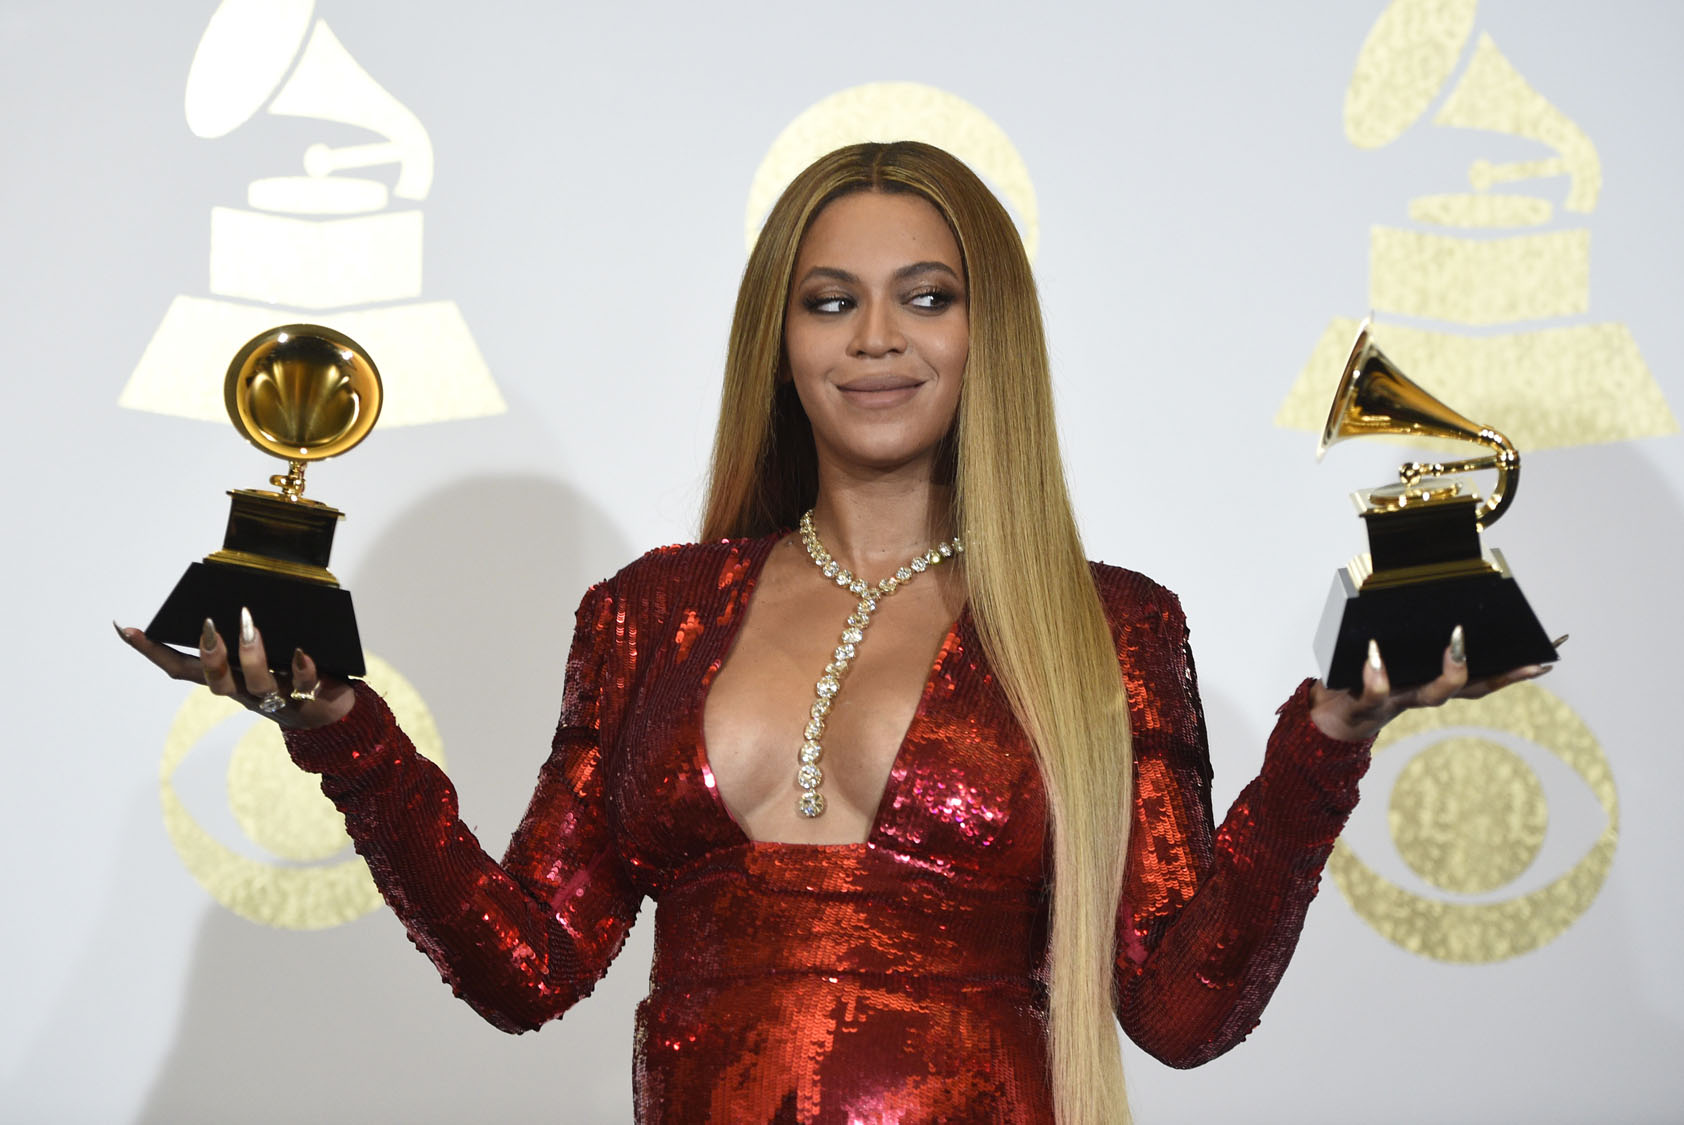 Grammy: Photos From The 59th Annual Grammy Awards